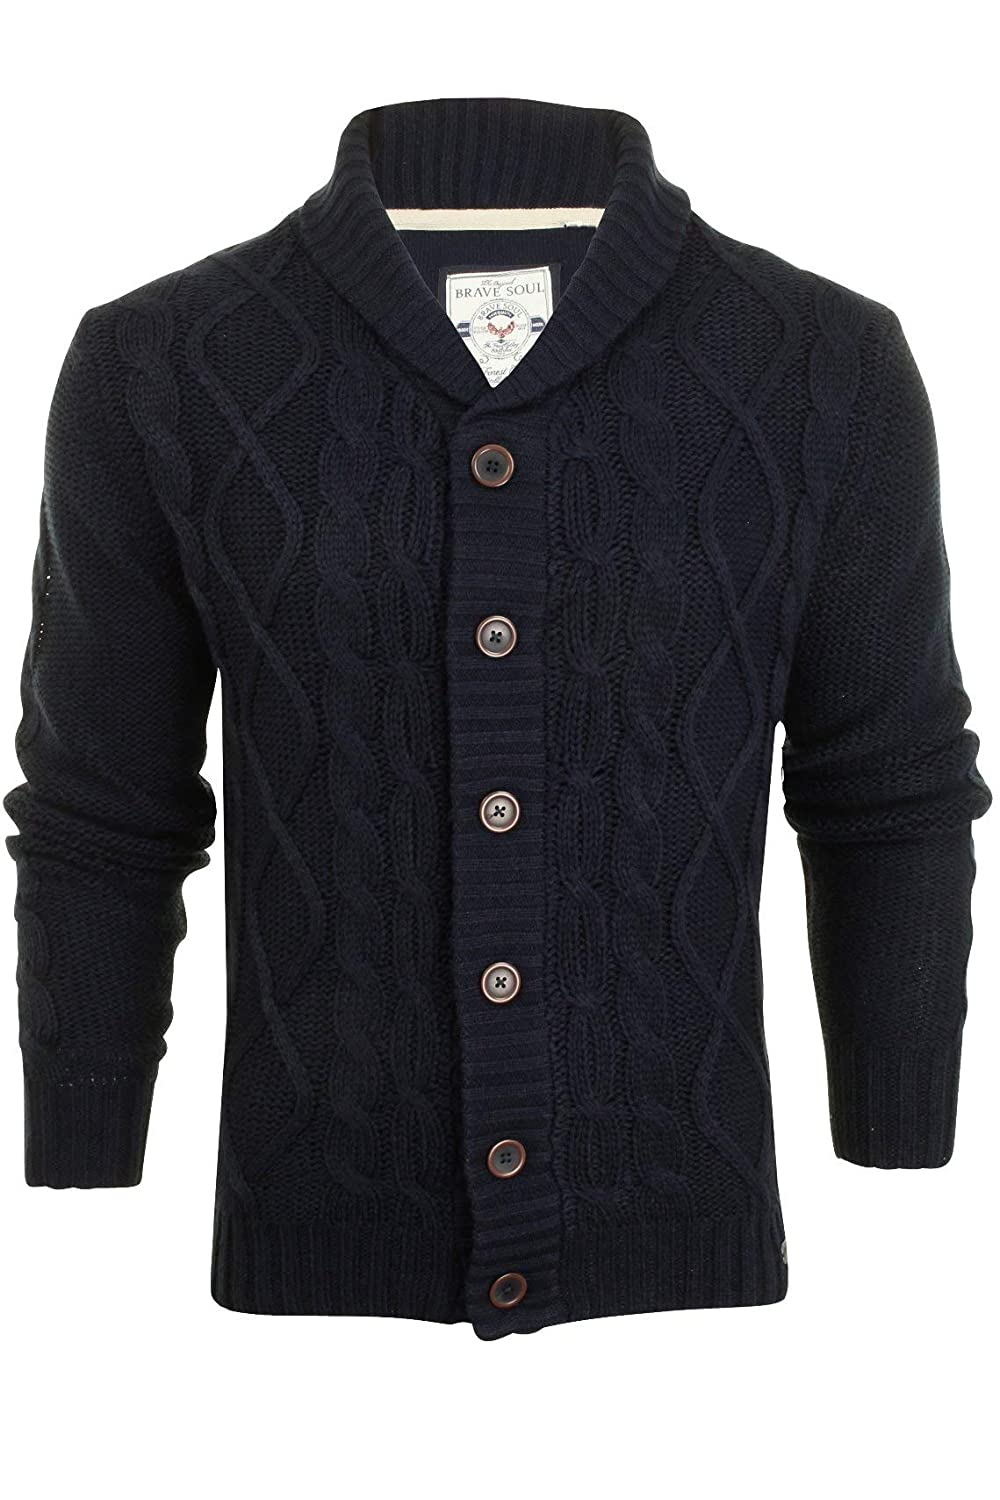 Brave Soul Mens Button-up Cardigan with Shawl Neck & Cable Knit